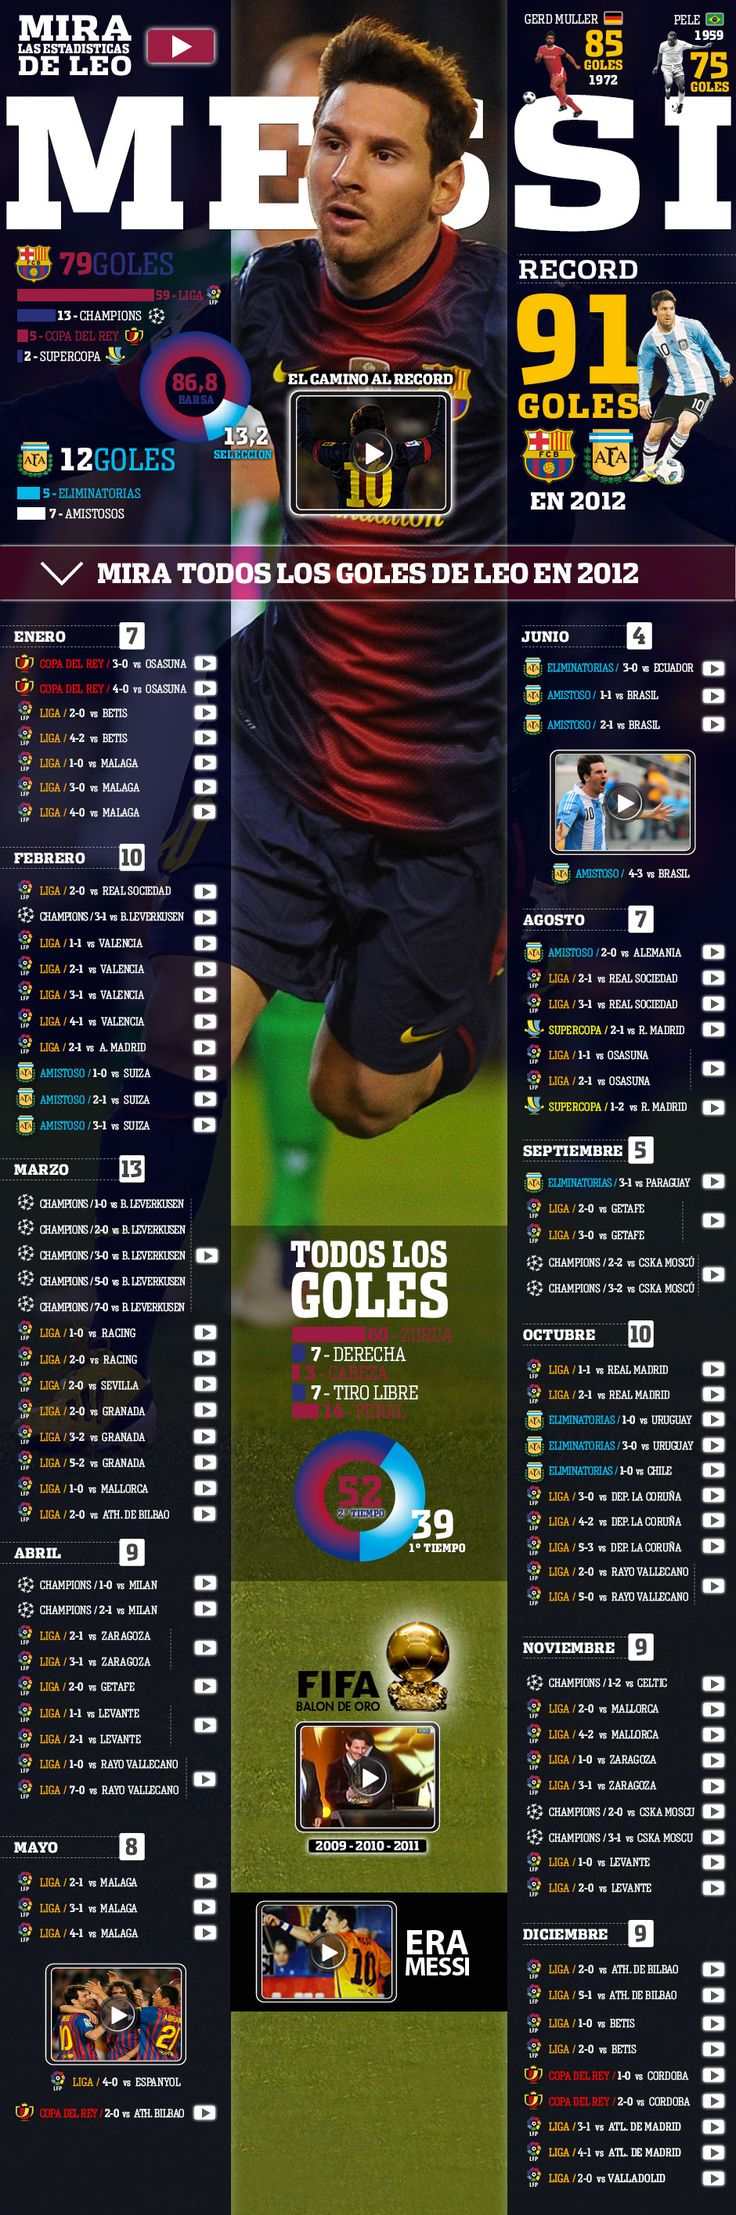 MESSI 91 goals in 2012 be got his 301st goal a few weeks ago!